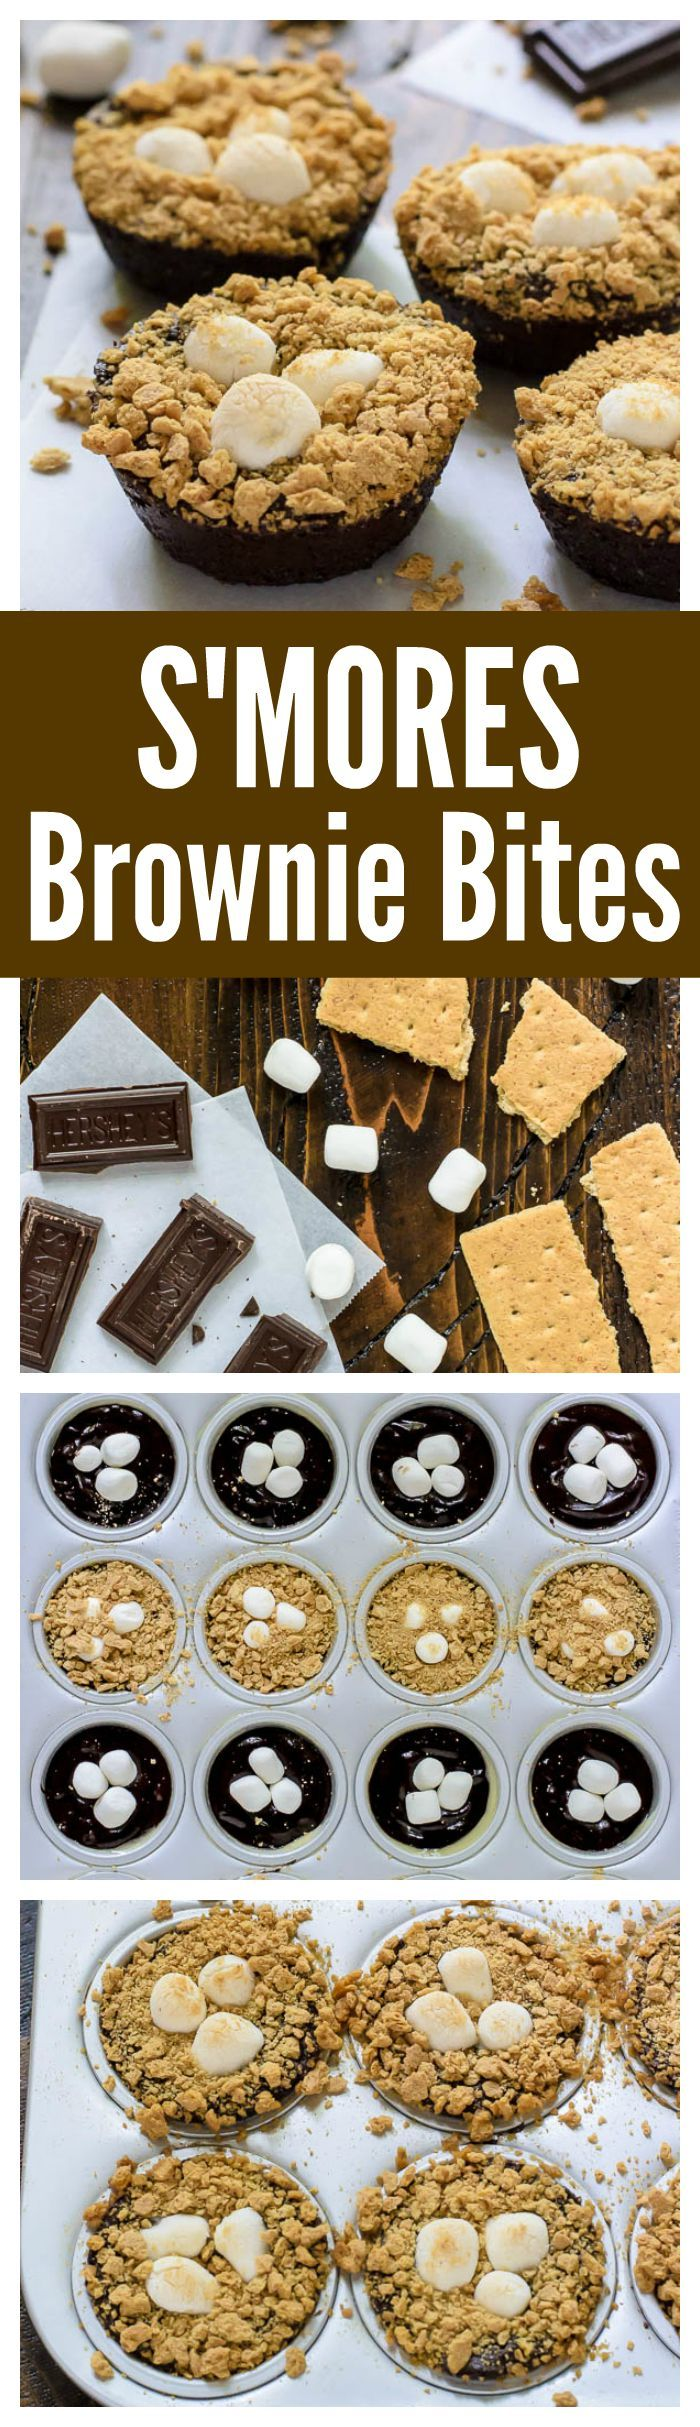 How to make S'mores Brownie Bites in a mini muffin tin. Gooey brownies, toasty marshmallows and graham crackers. All of the s'mores flavor, no campfire required!